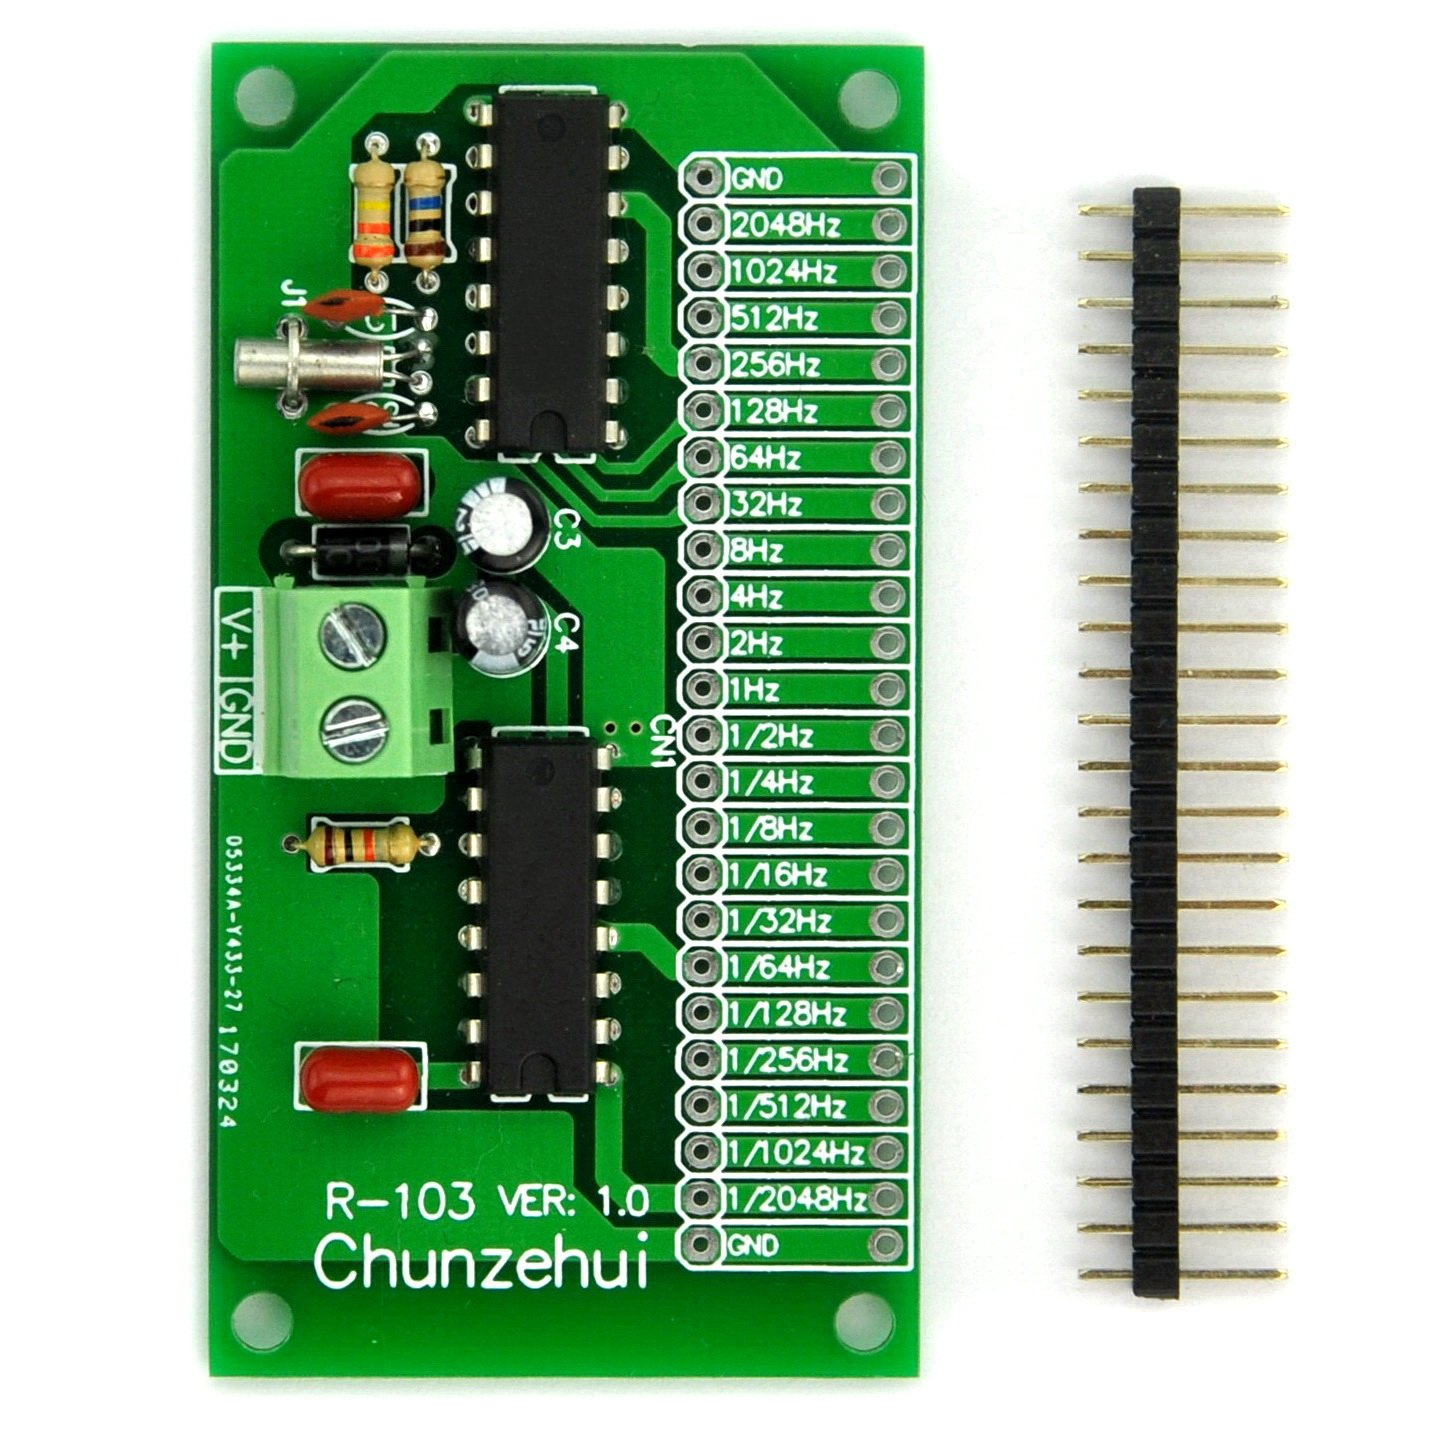 Chunzehui 2048Hz ~ 1/2048Hz Extremely / Super Low Frequency Square Wave Oscillator Module, Square Wave Signal Generator. Total 22 output ports, at the same time can output 22 frequencies.